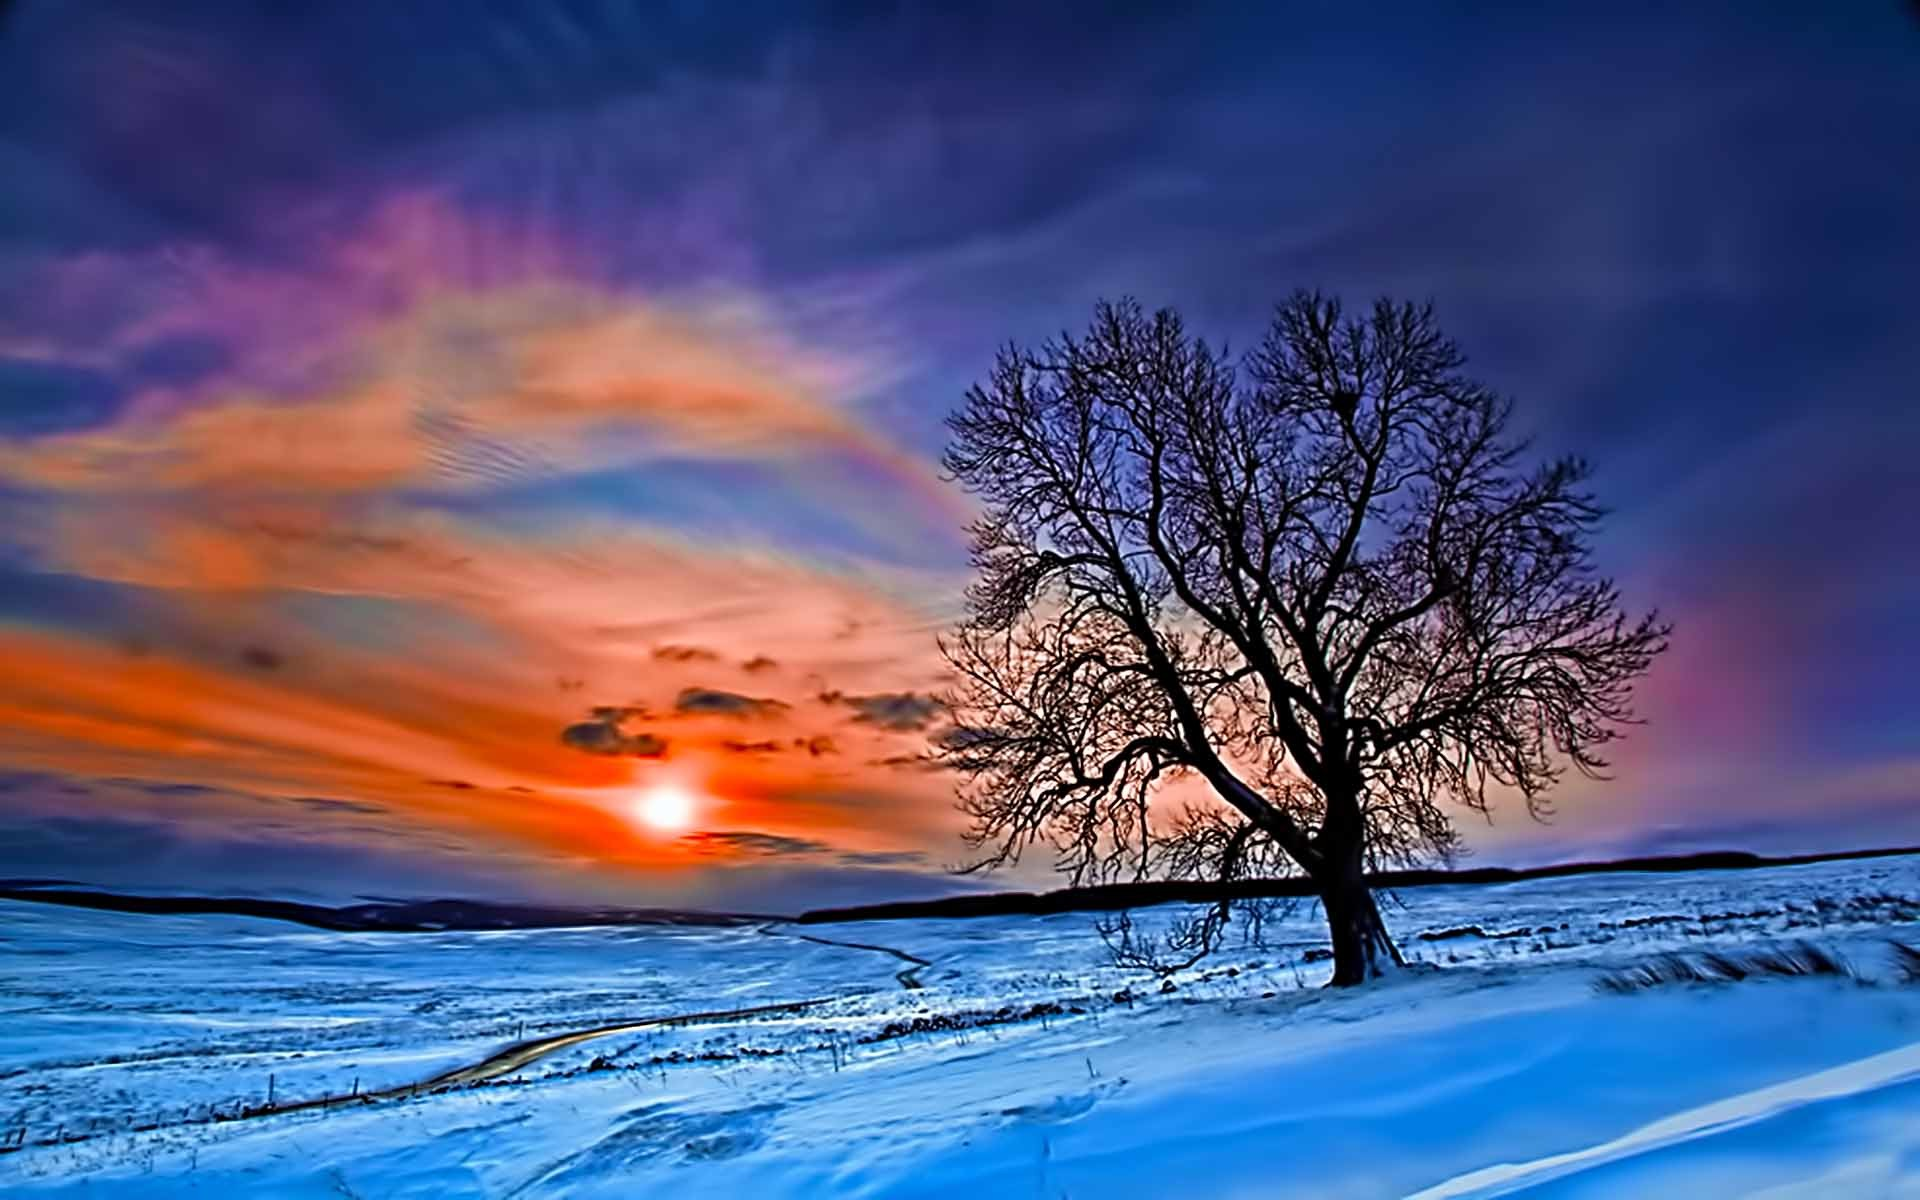 1920x1200 Winter Sunset images HD Wallpapers | Live HD Wallpaper HQ .